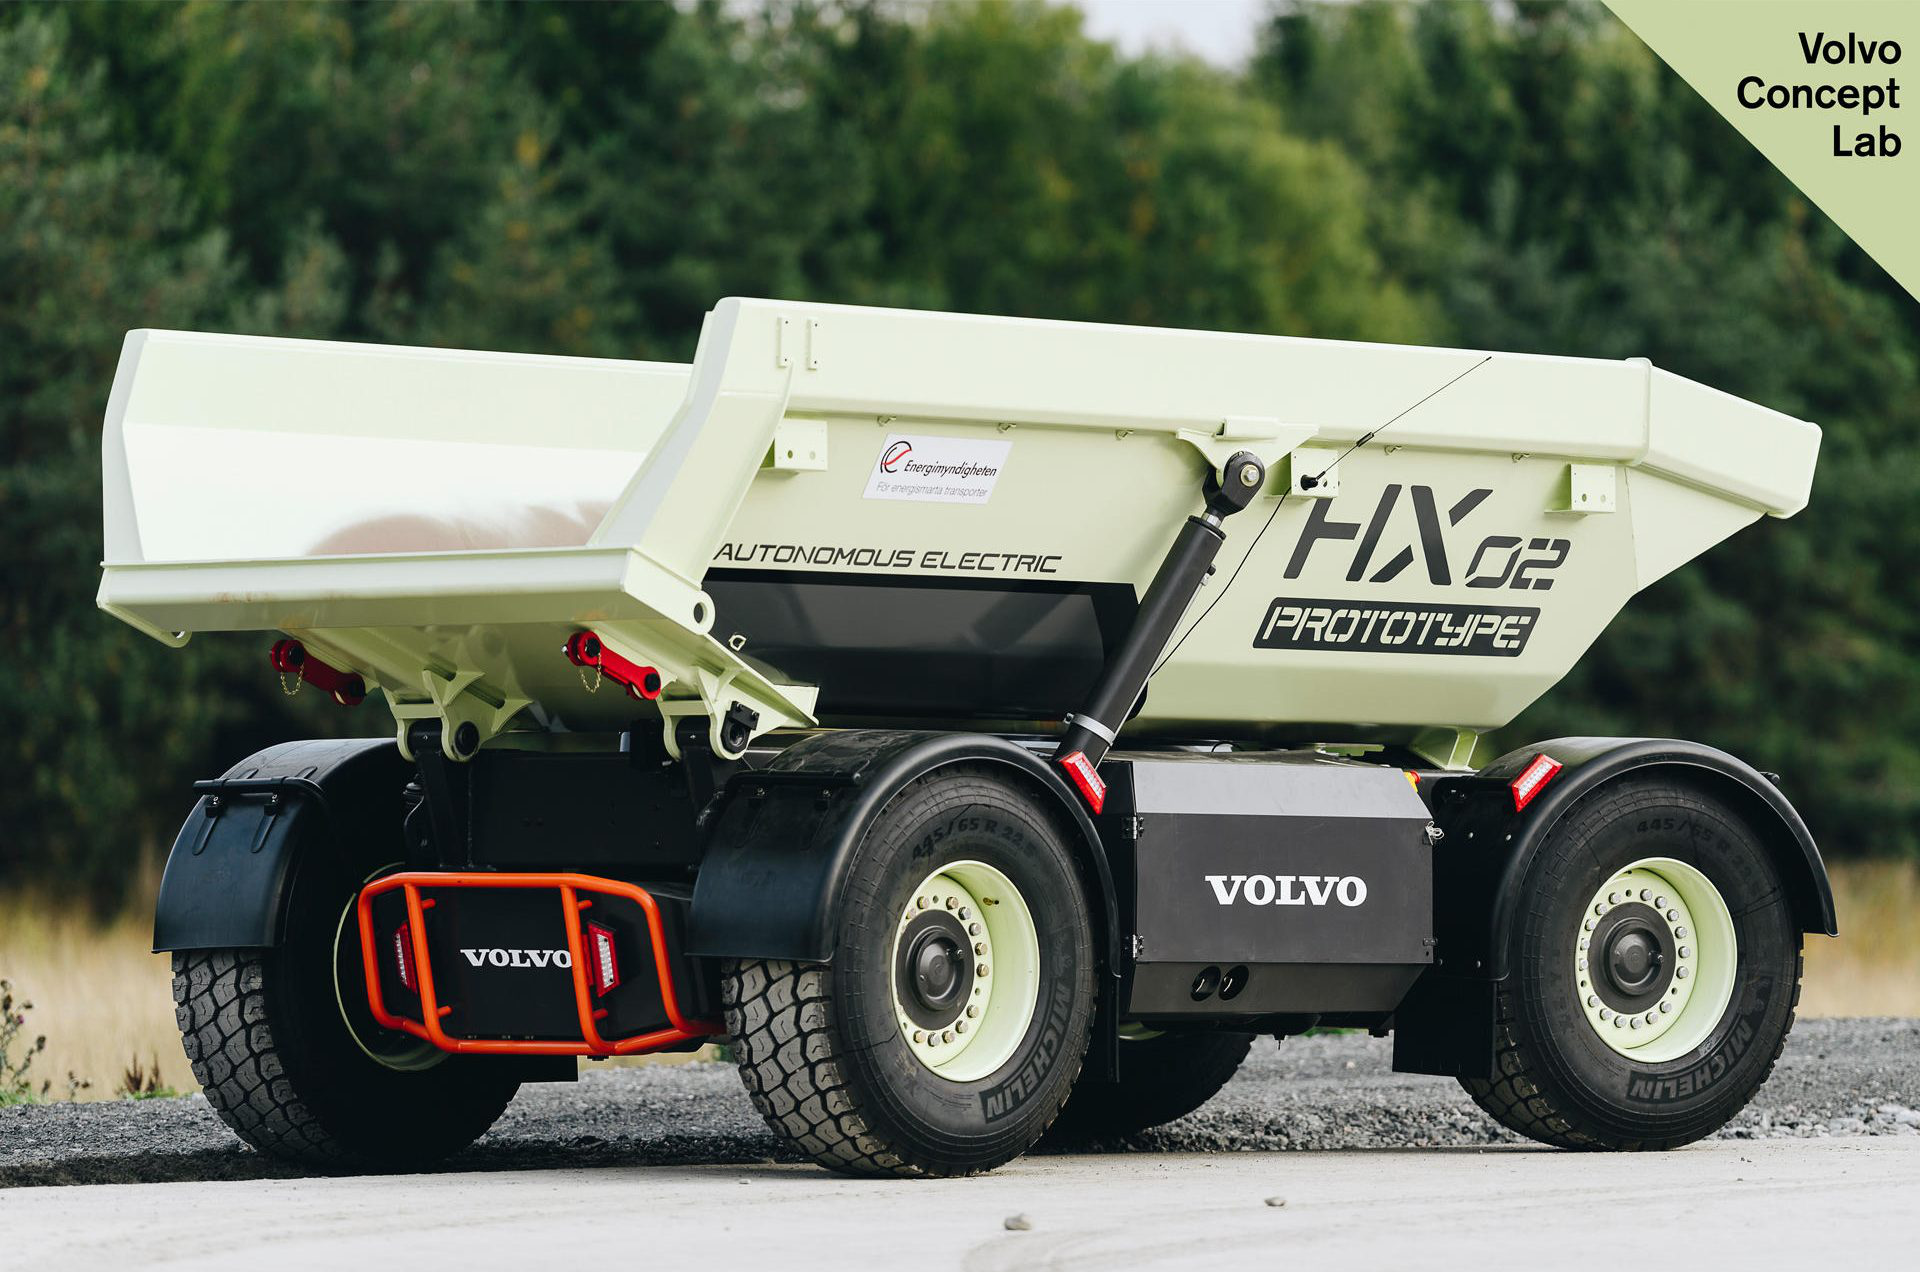 Volvo, Skanska begin field testing of electric site quarry, expect 95% carbon emissions reduction, 25% operational cost reduction